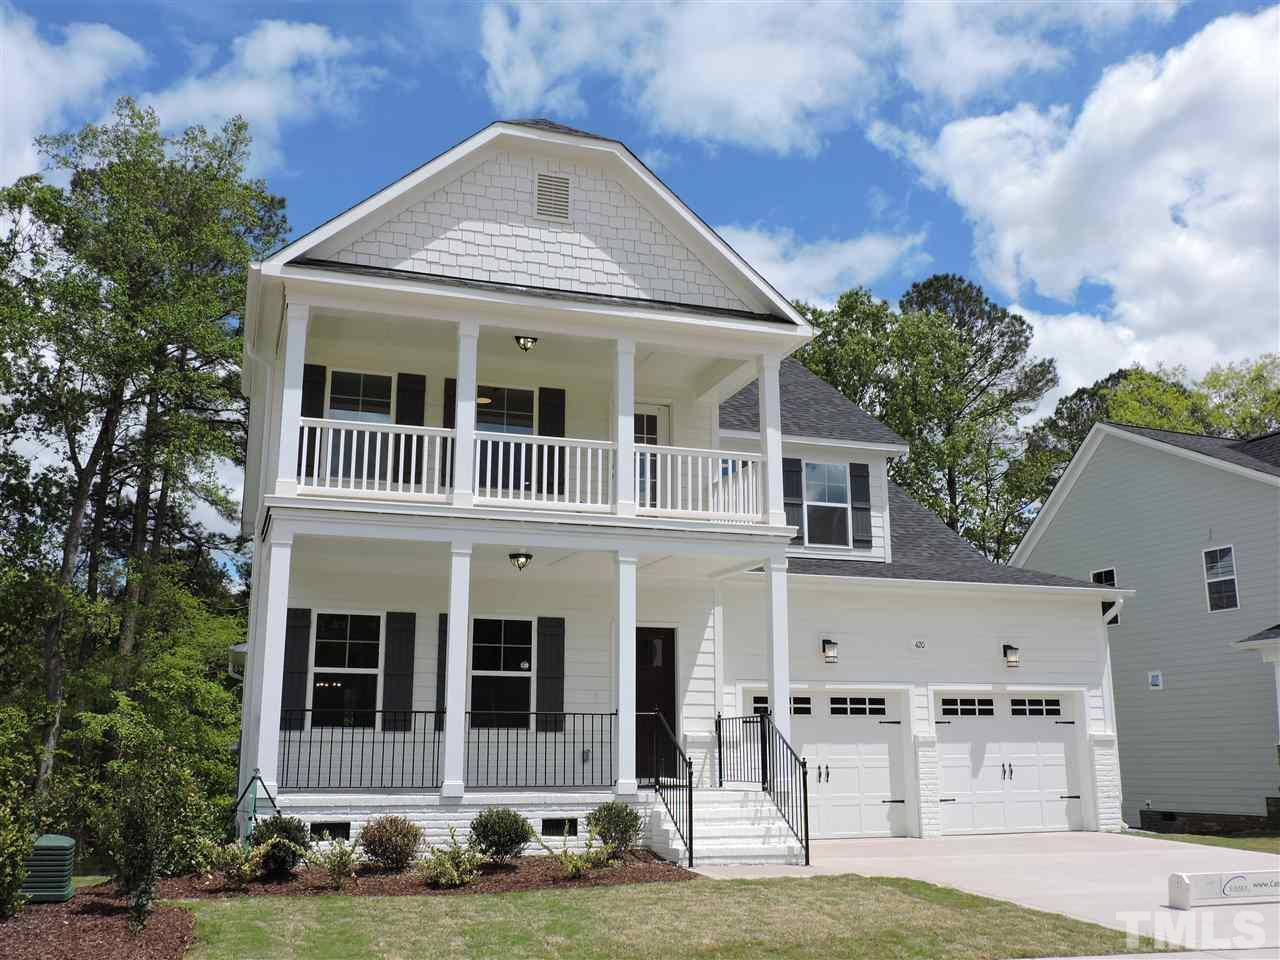 1ST FLOOR GUEST SUITE! COVERED PORCH W/POND VIEW! HWDs Thru Main Living! Kit: Granite Ctops, Cstm Cabs w/Crwn Trim, SS Appls Incl GasRange, Angled Breakfast Bar, Tile Backsplash, Wlk in Pantry & Butlers Pantry! Open to BreakfastNook w/Access to Covered Porch! Master: w/Trey Ceiling, Plush Carpet! MBath: Tile Floor, DualVanity w/Granite, Cstm Cabs, Tile Srrnd Walk in Shower, Soaking Tub & WIC! FamRm: HWDs, Cstm Srrnd GasLog FP w/Mantle Blt Ins, Recessed Lights & Ceiling Fan! Upstairs Loft Area!